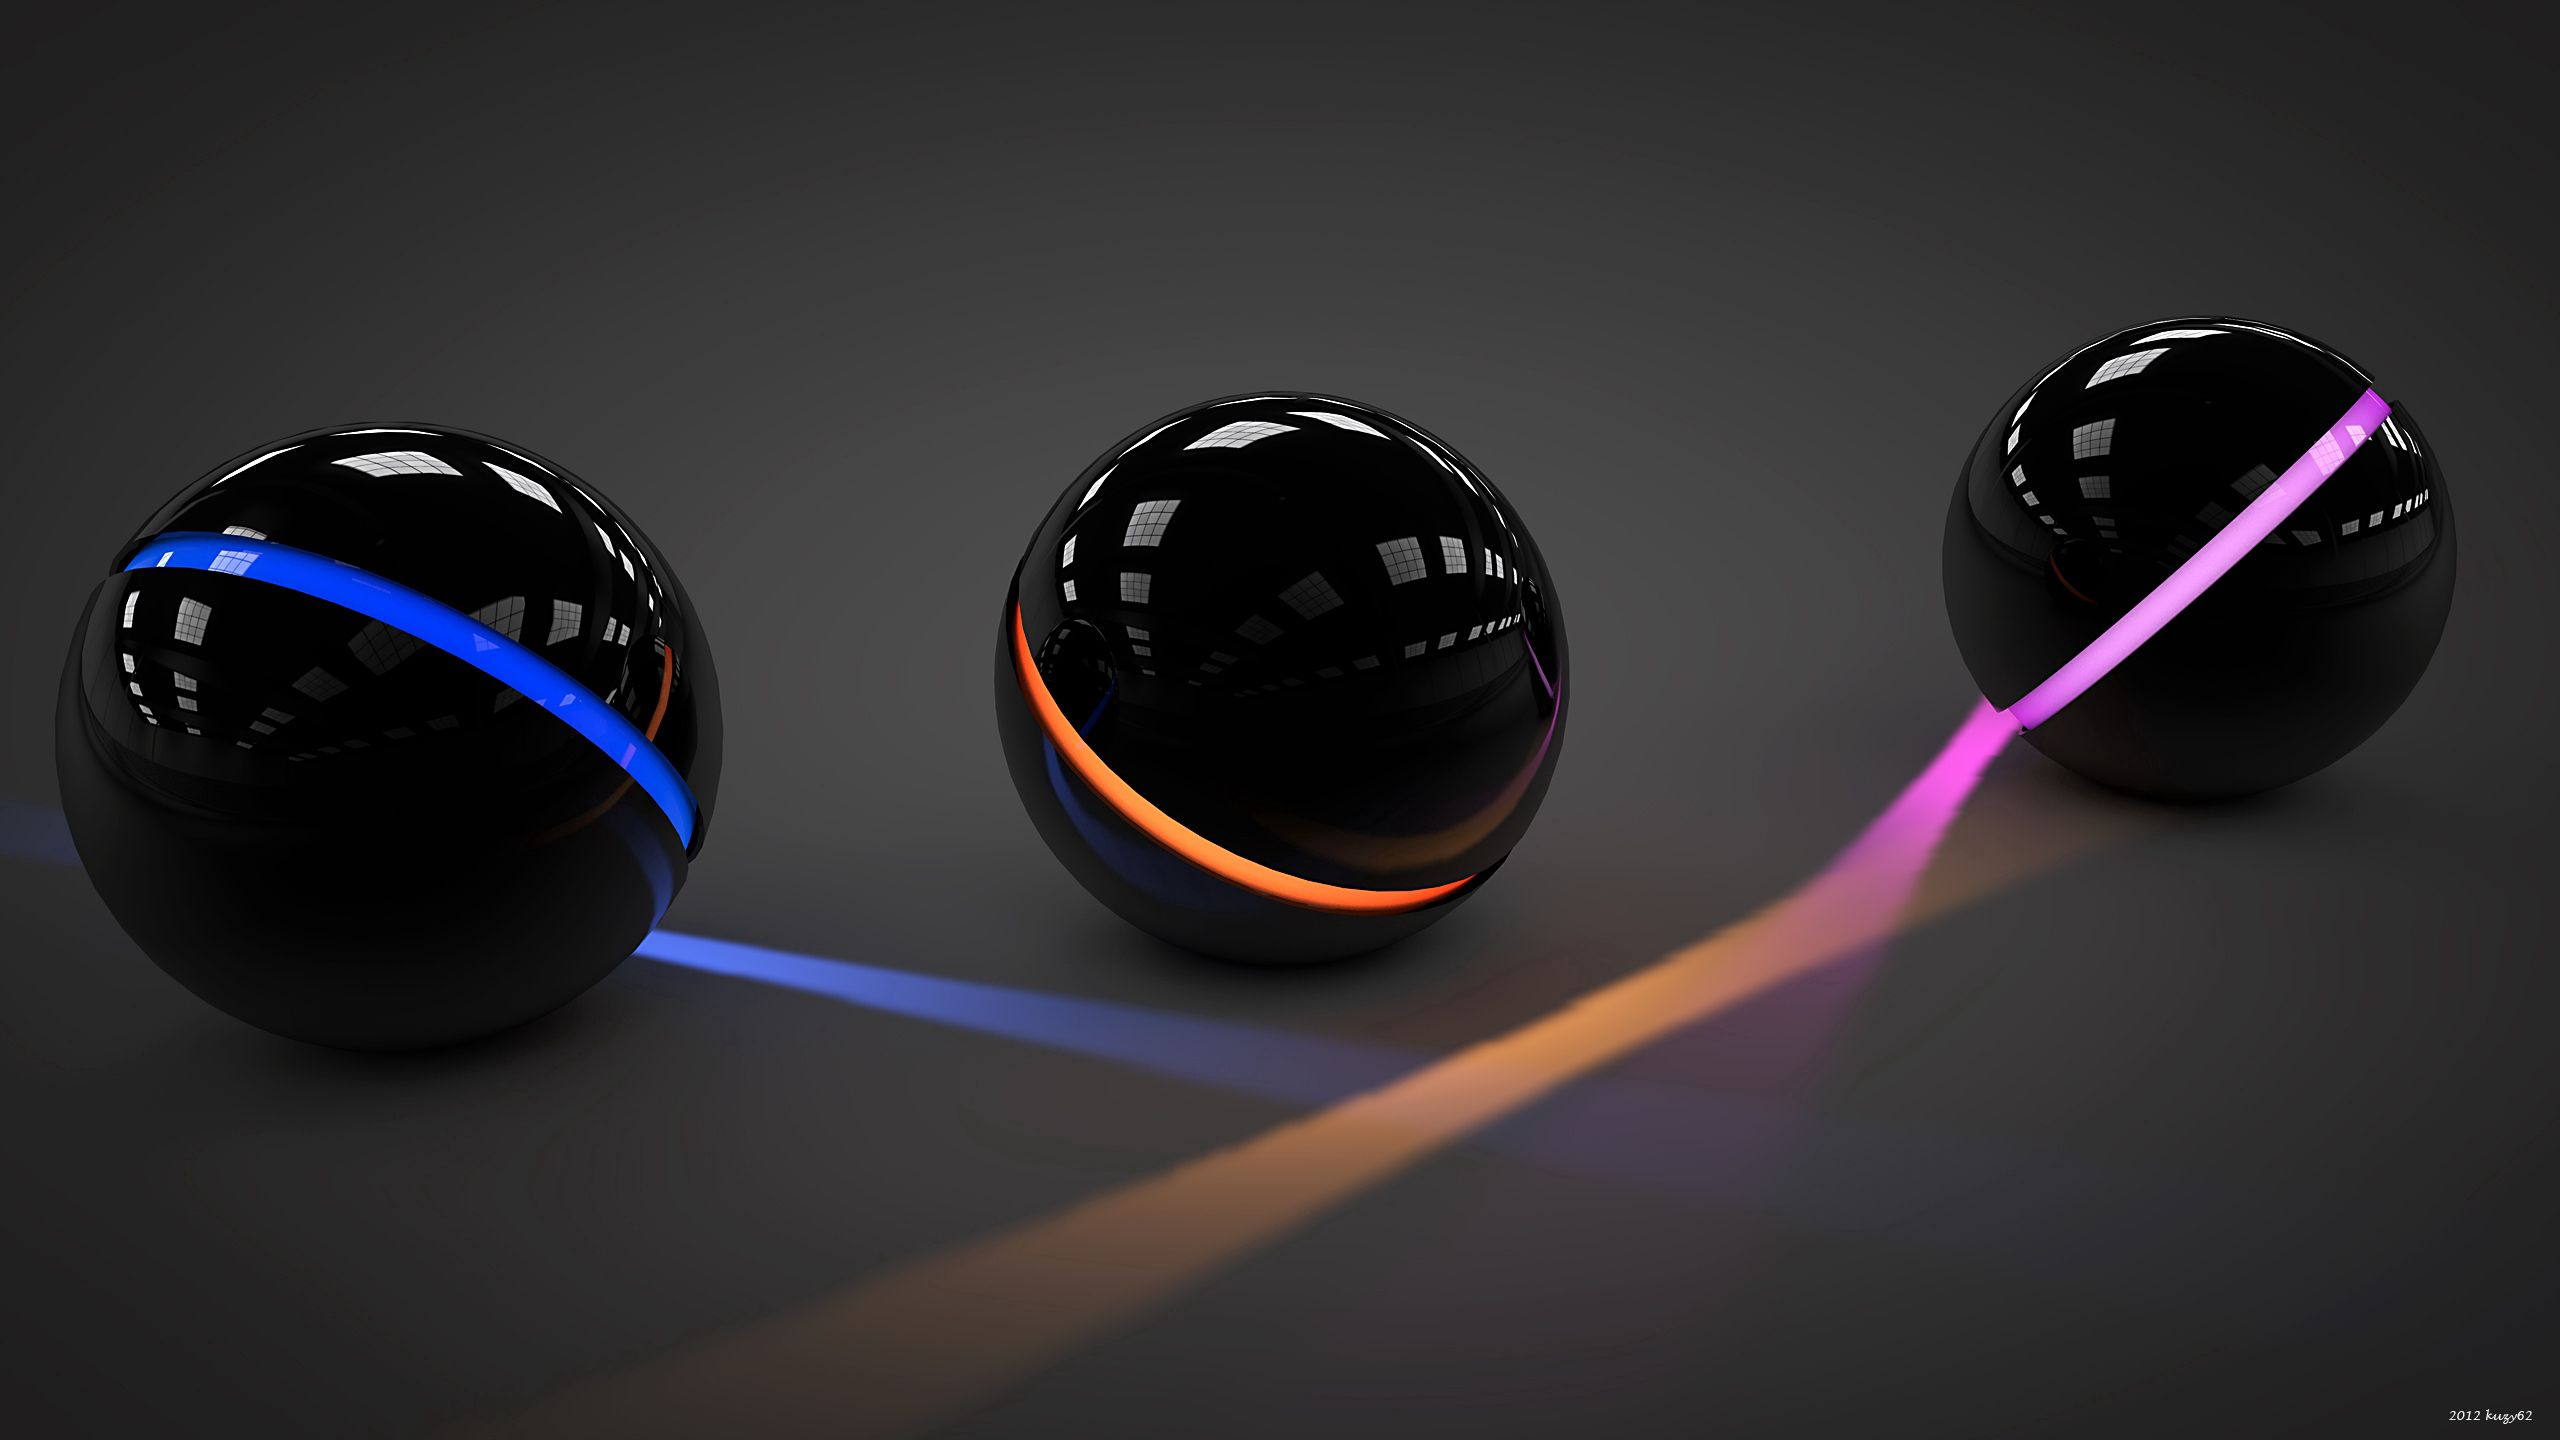 53024 Screensavers and Wallpapers Balls for phone. Download 3D, Glass, Balls, Shine, Light, Neon pictures for free